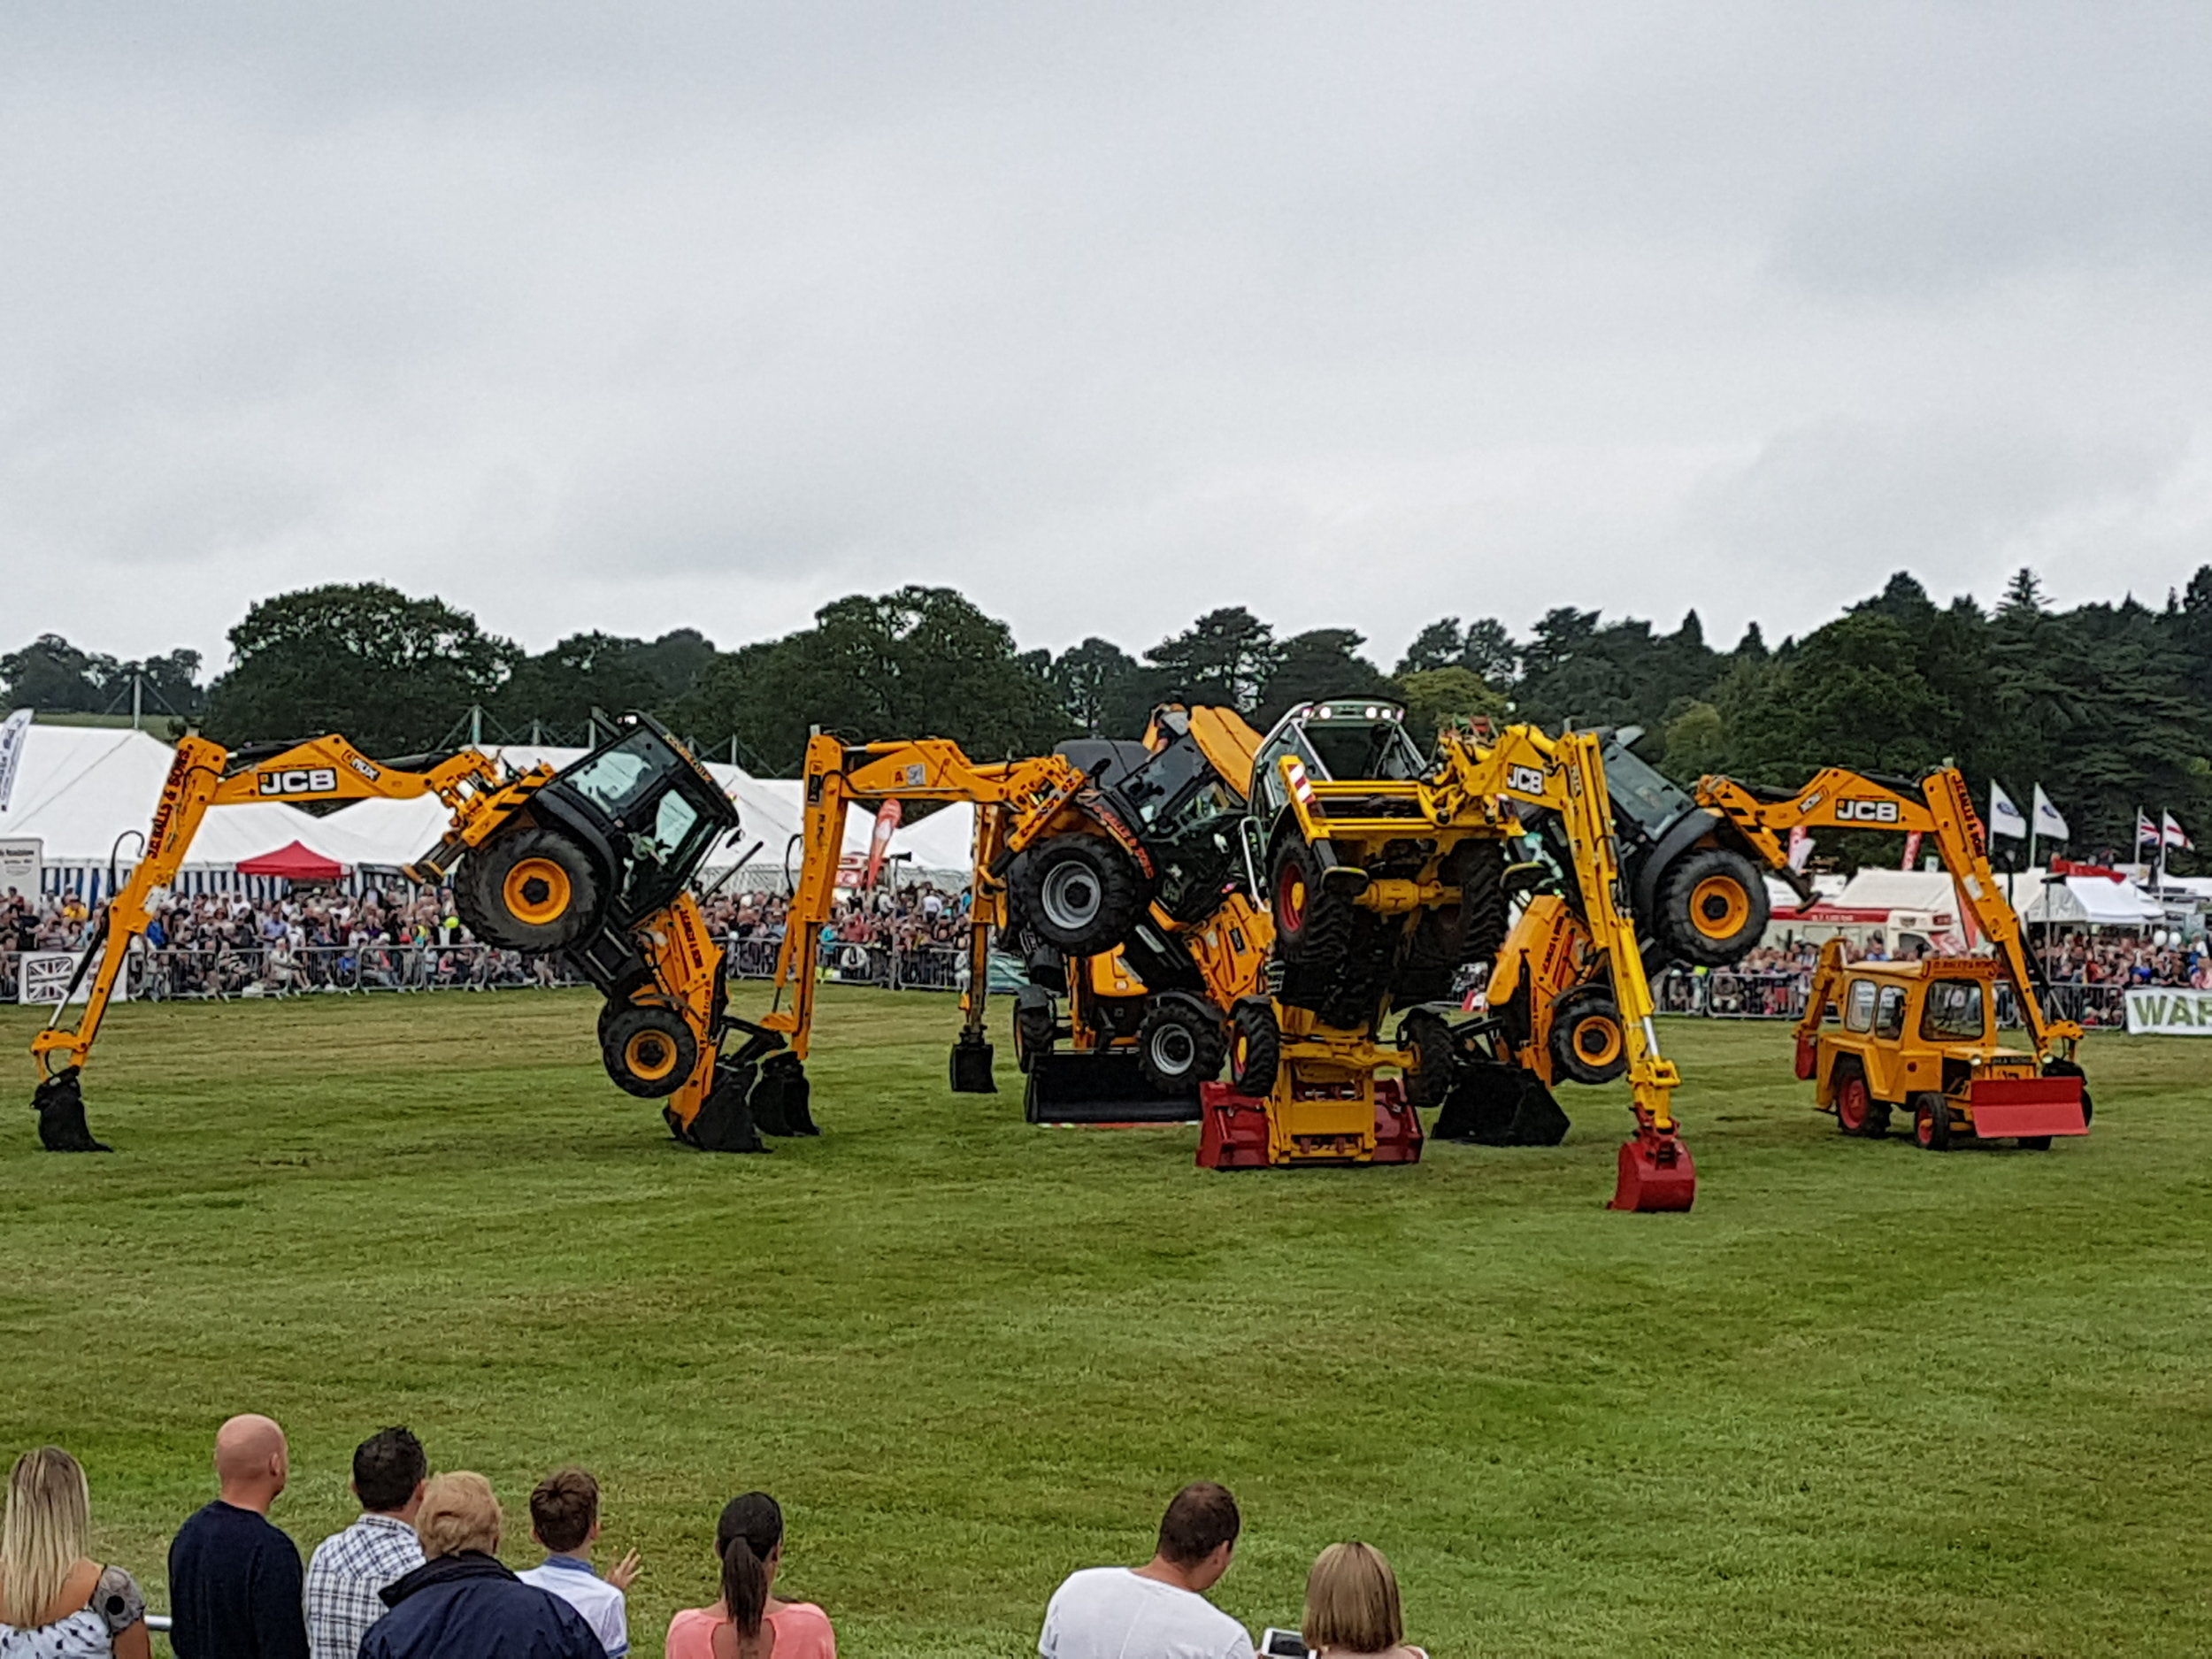 The JC Balls Dancing Diggers will return to the Derbyshire County Show for 2018: Penguin PR - public relations, media and communications